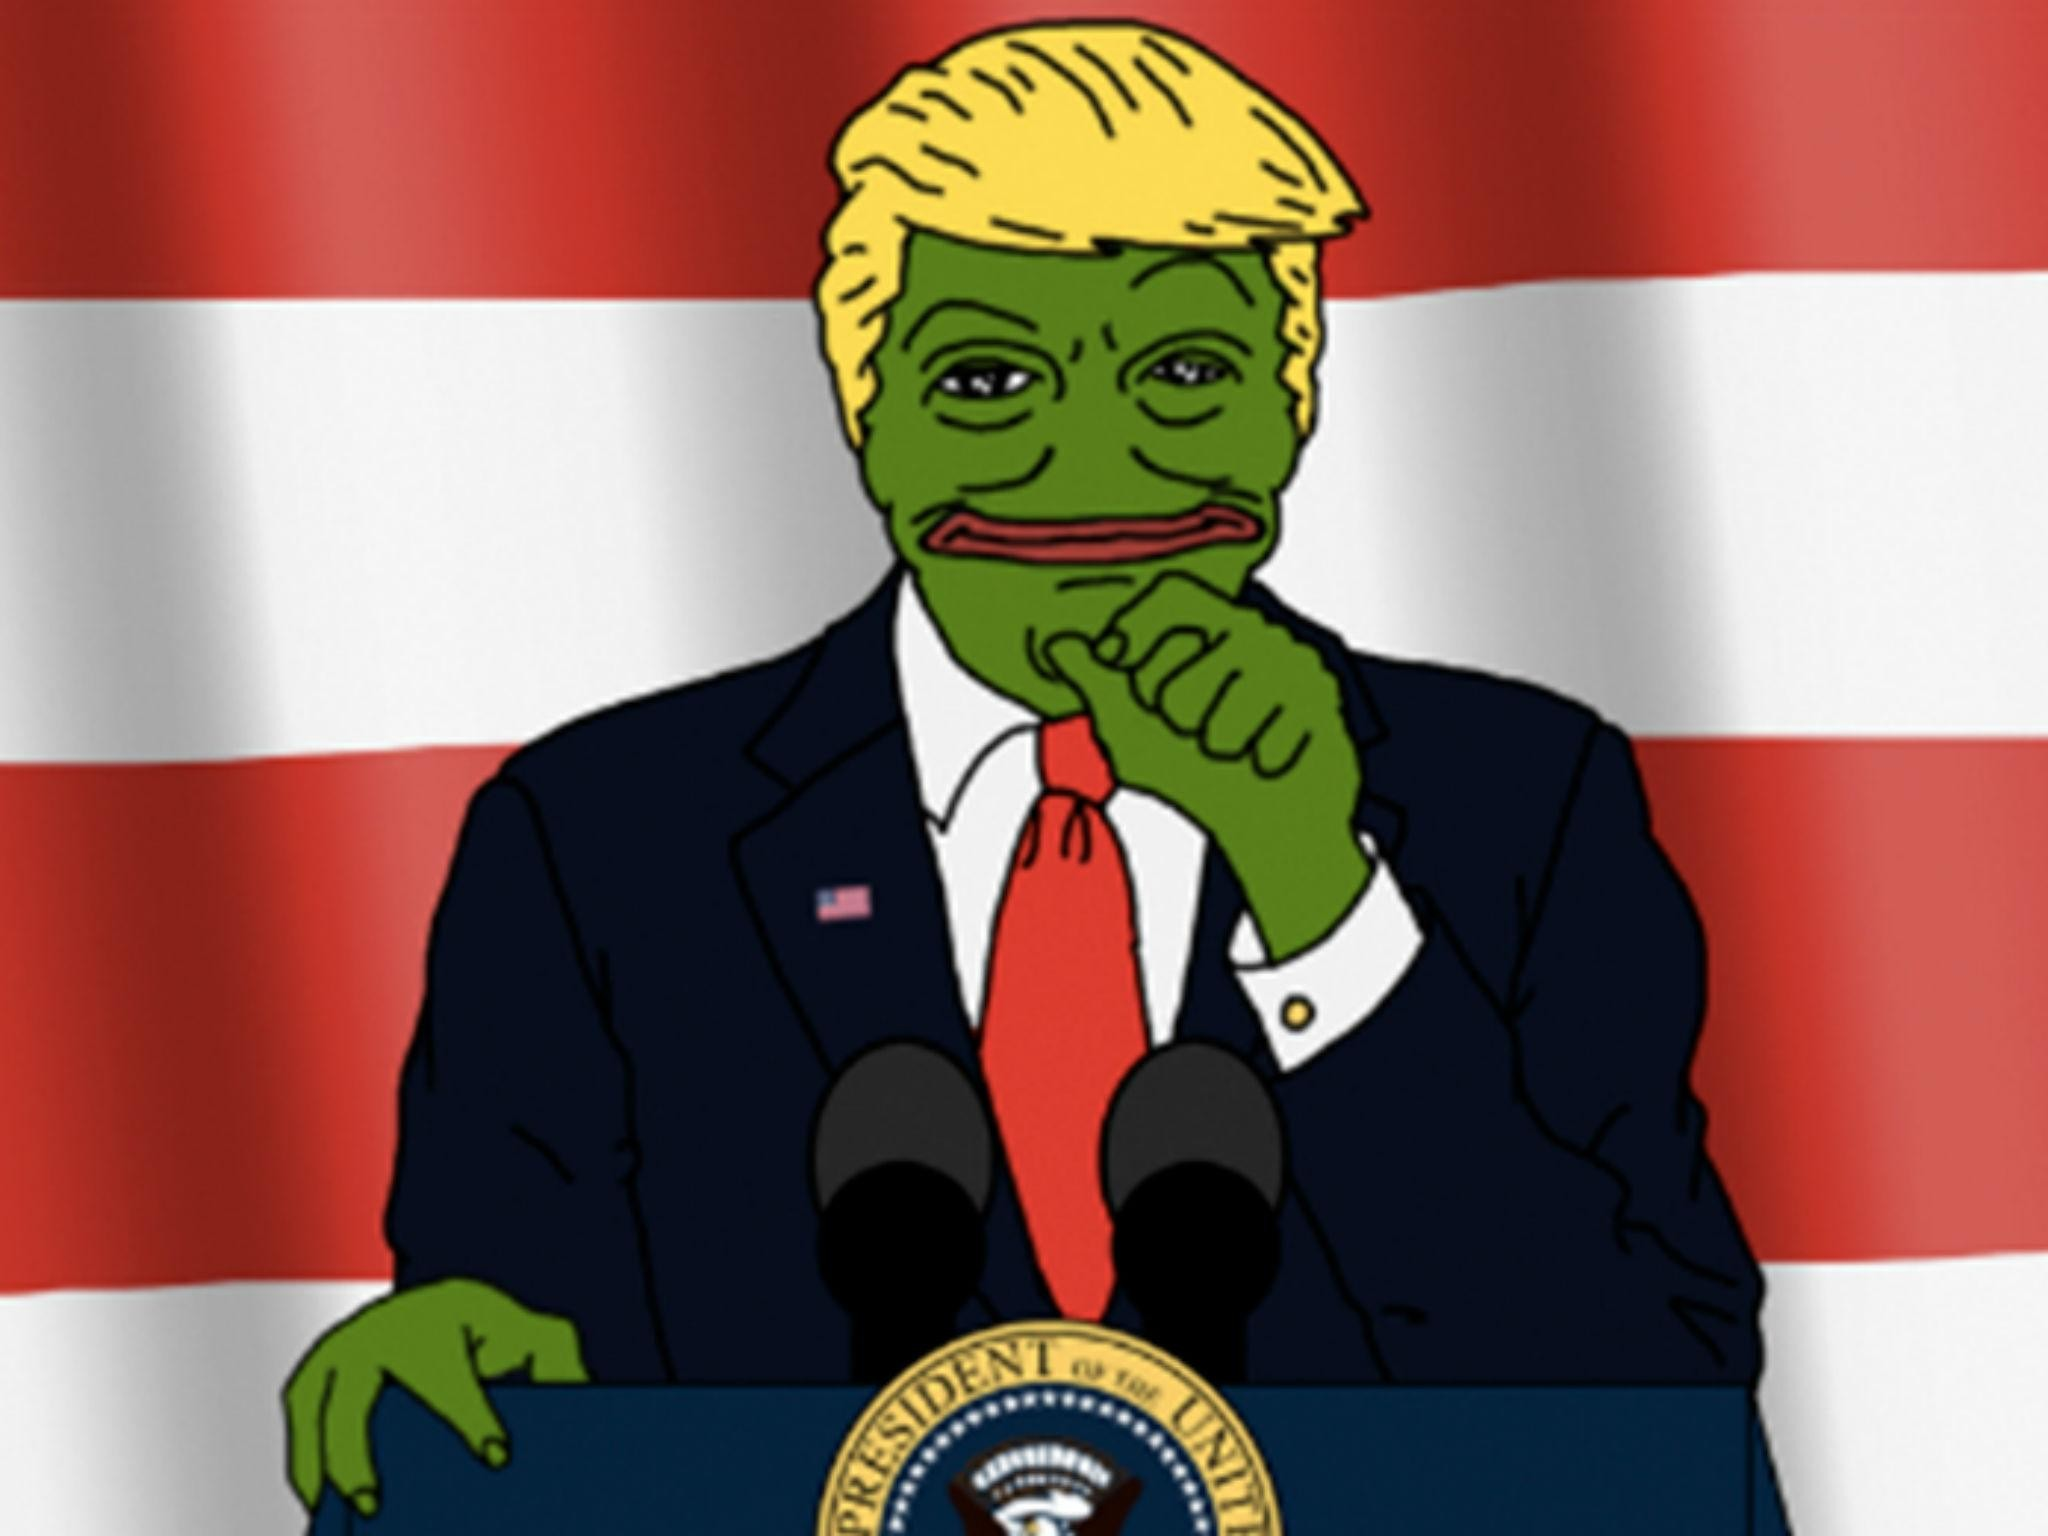 Pepe the Frog creator launches campaign to free meme from Donald Trump  supporters | The Independent